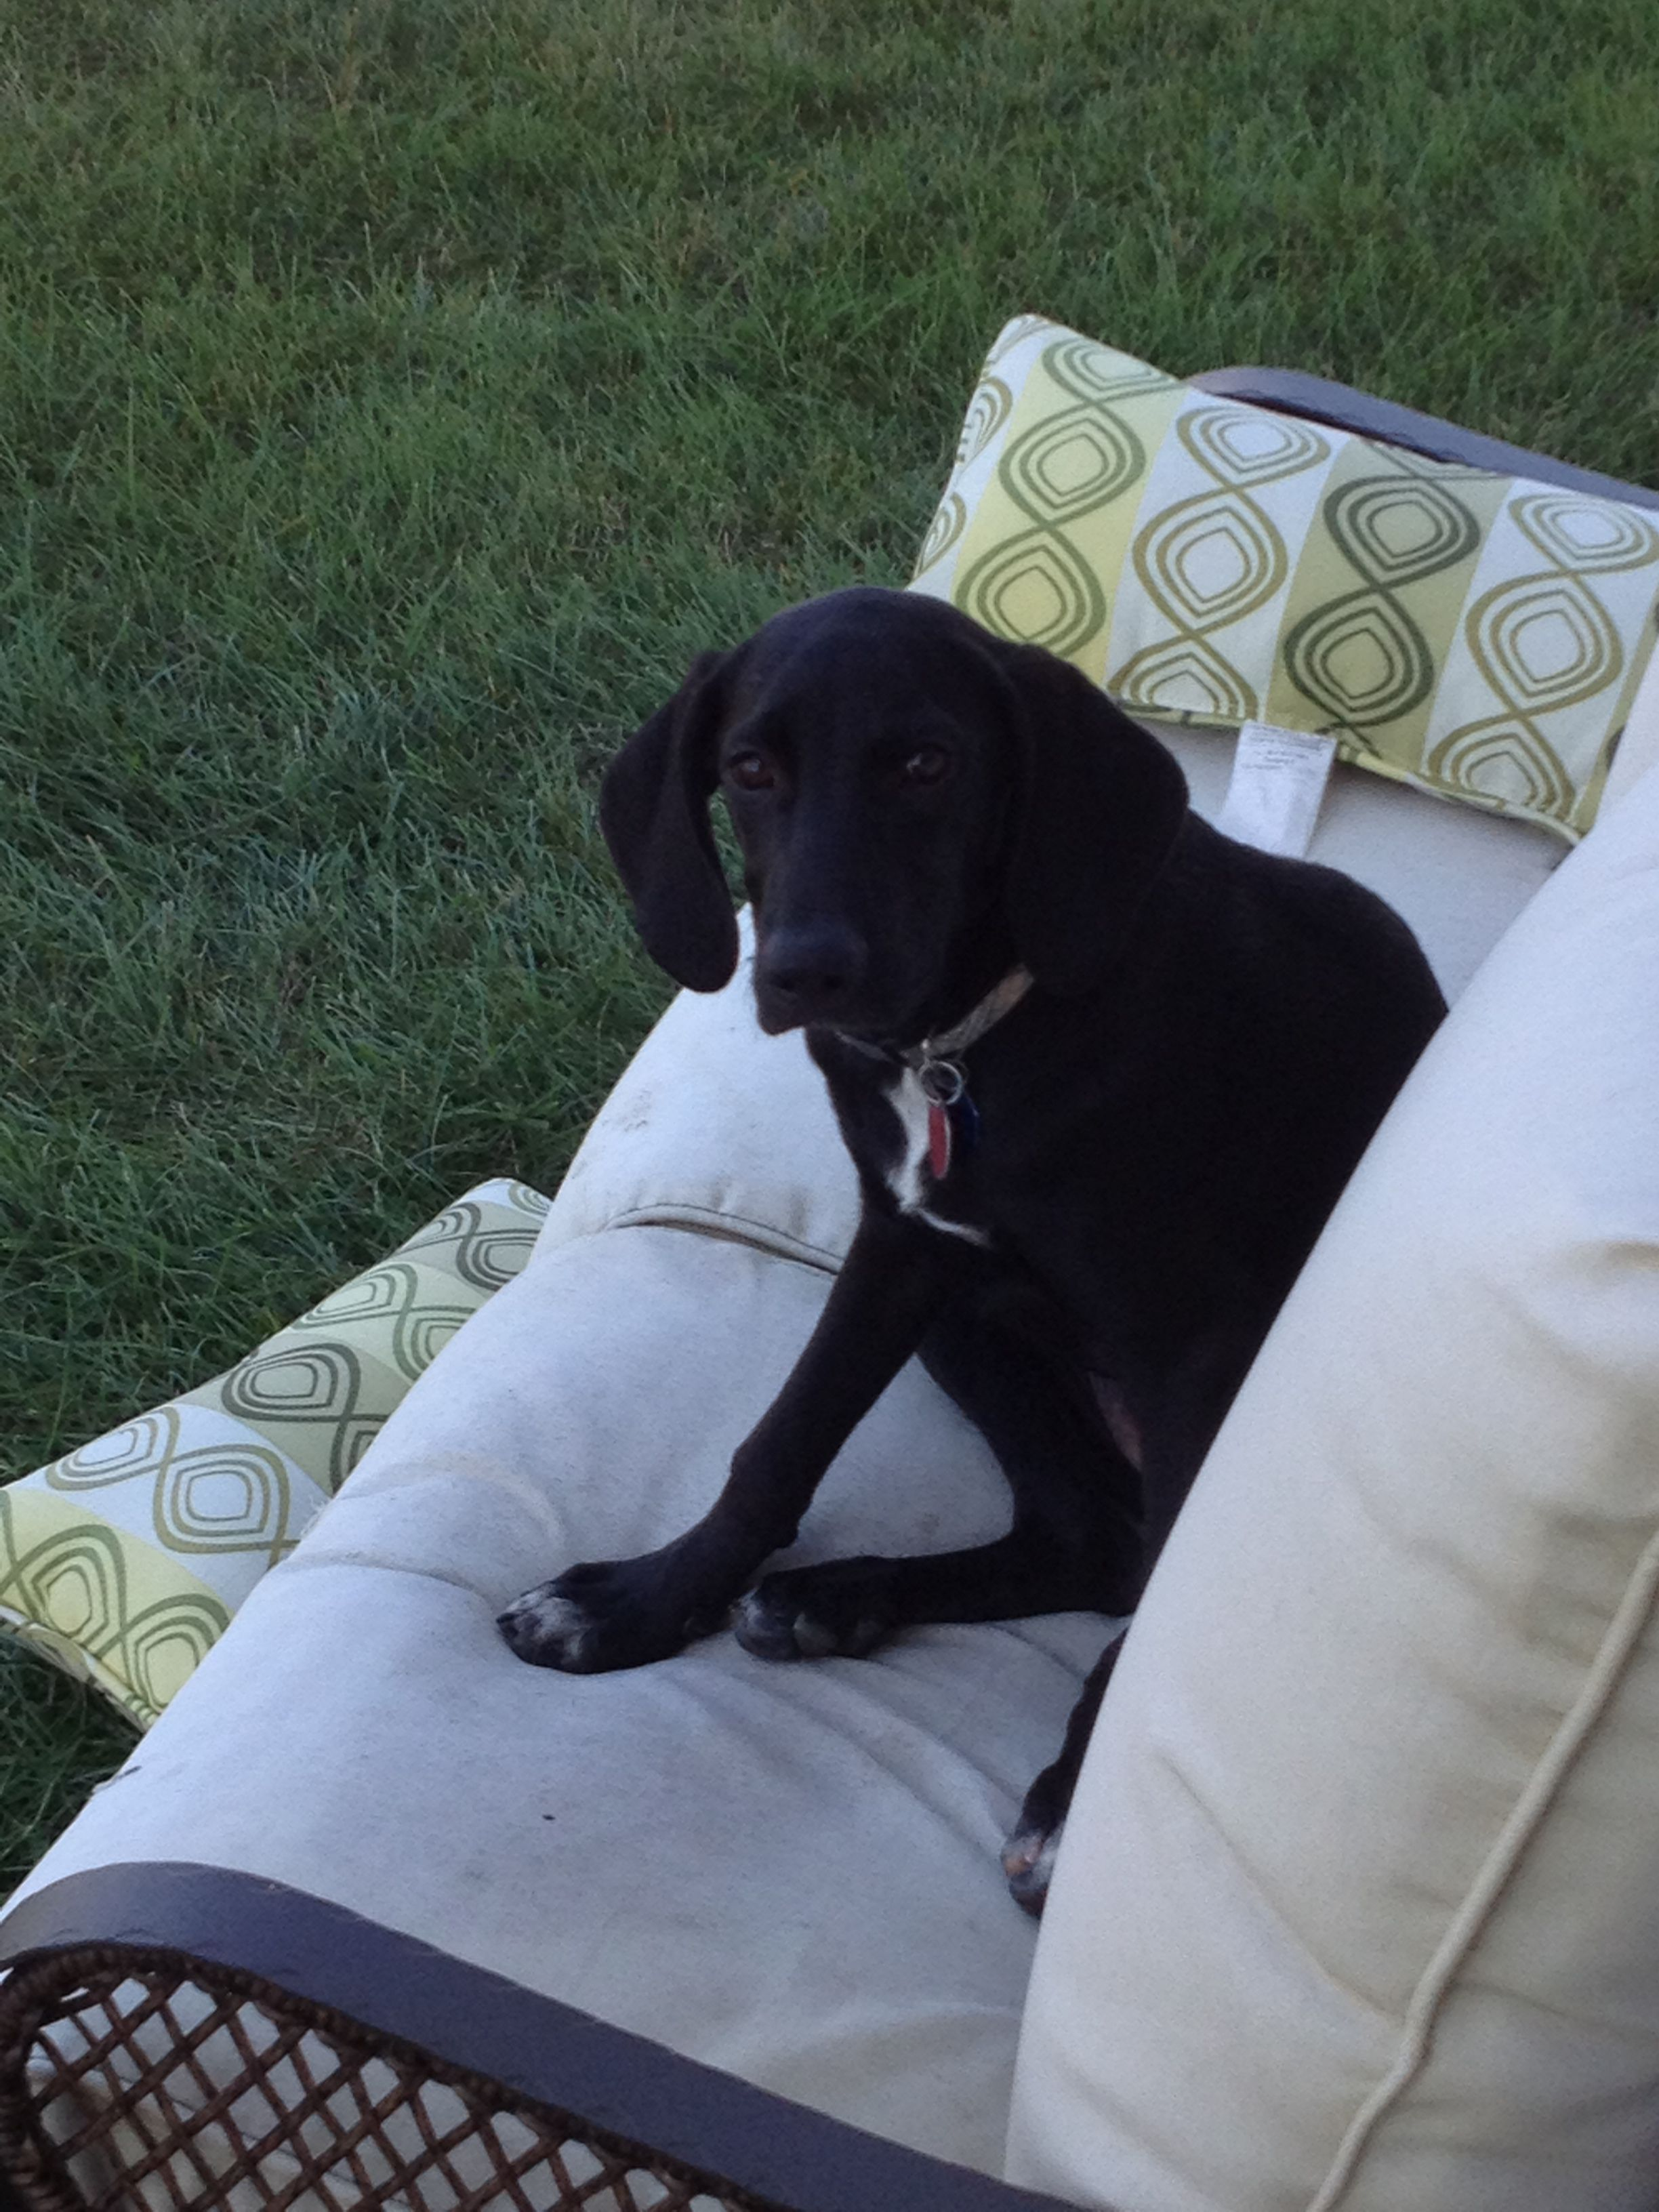 Bella a 45 month old female black lab mix puppy is